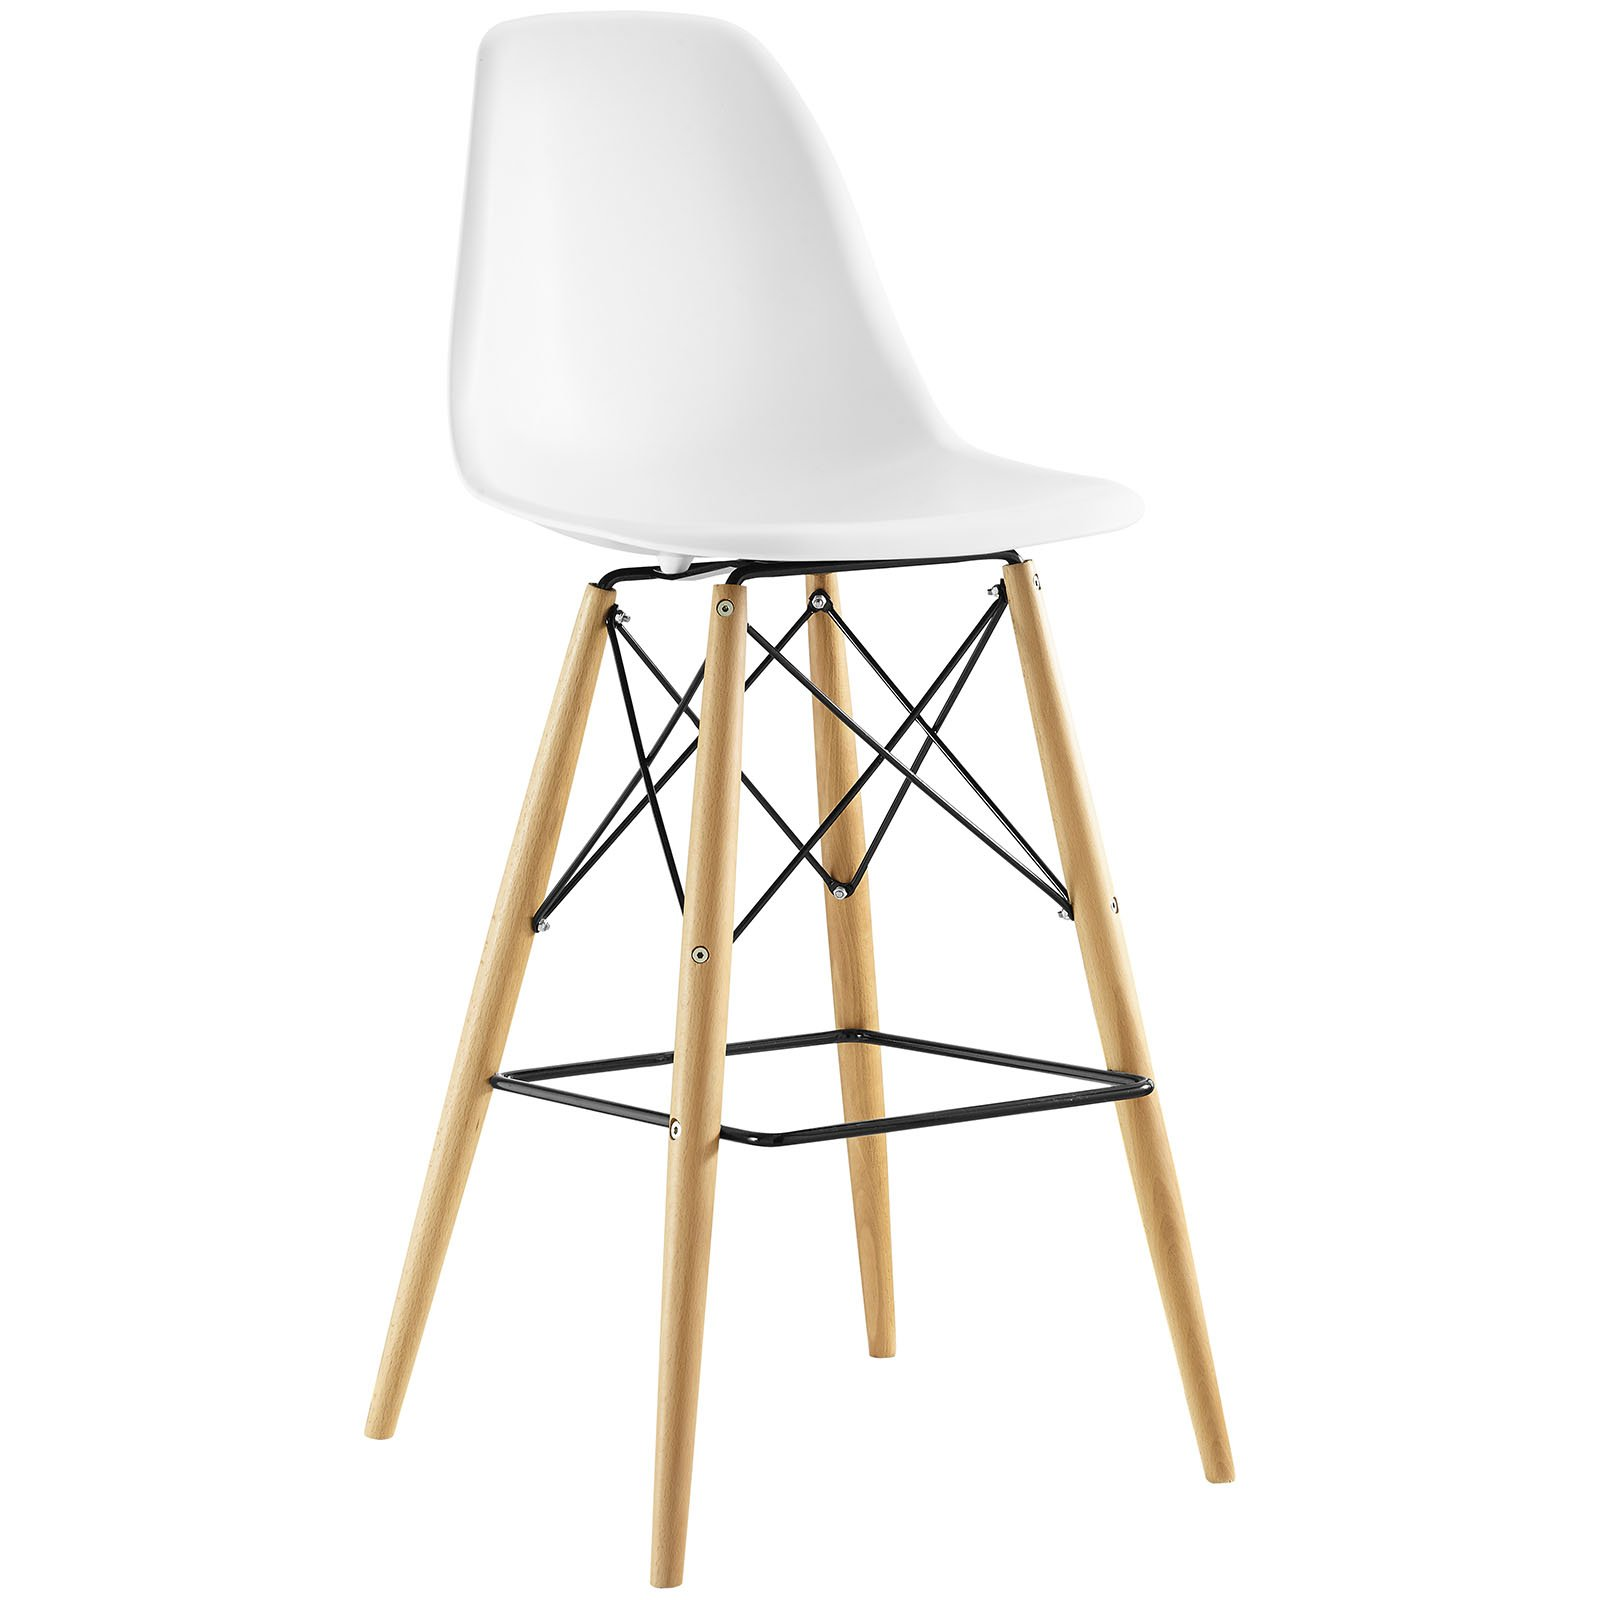 Modway Pyramid Mid-Century Modern Bar Stool with Natural Wood Legs in White by Modway